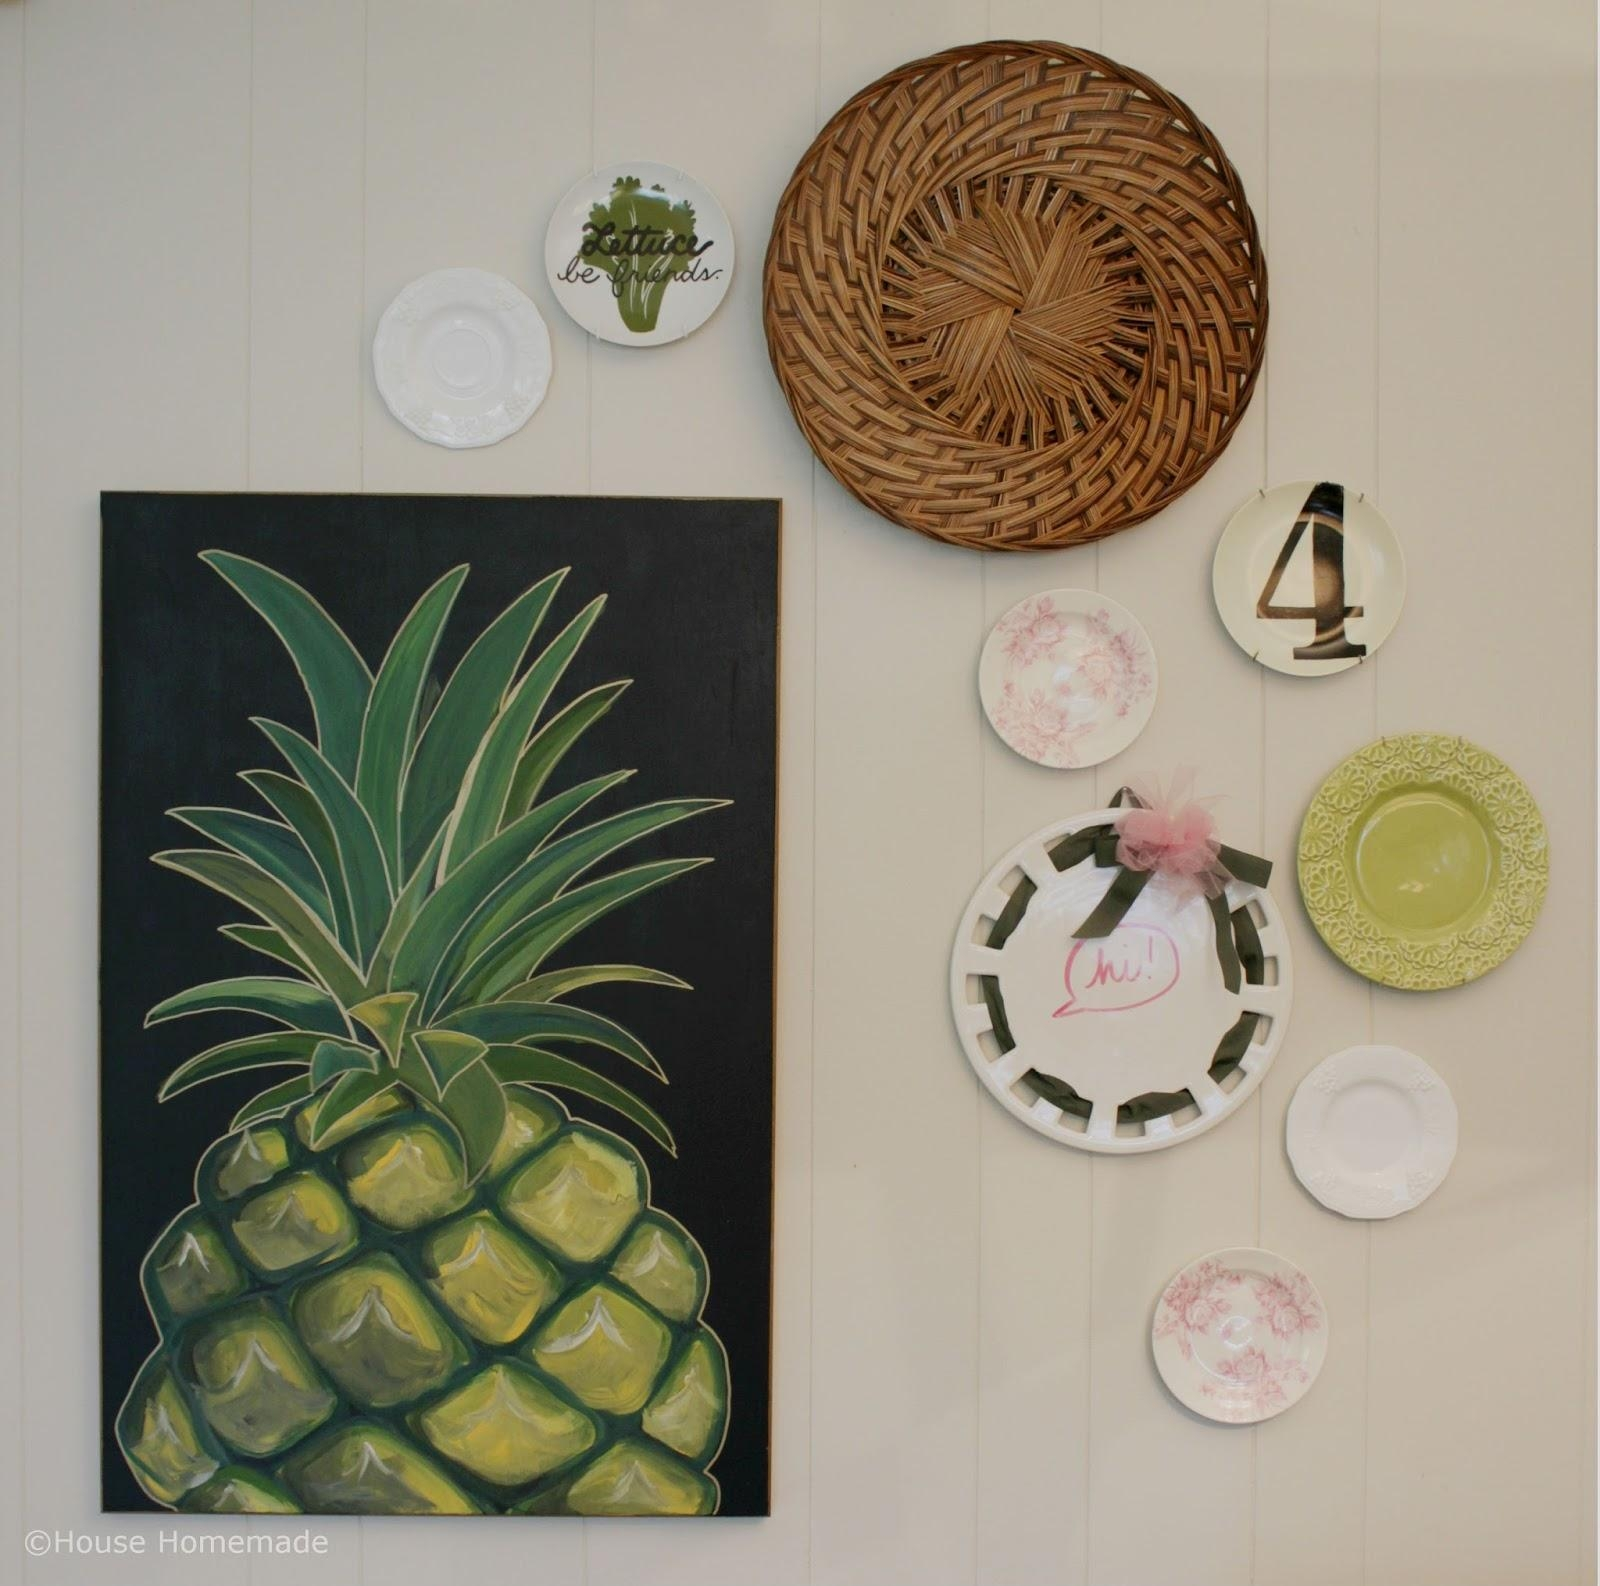 House Homemade: How To Turn Decor Into Wall Art Pertaining To Turn Pictures Into Wall Art (View 11 of 20)